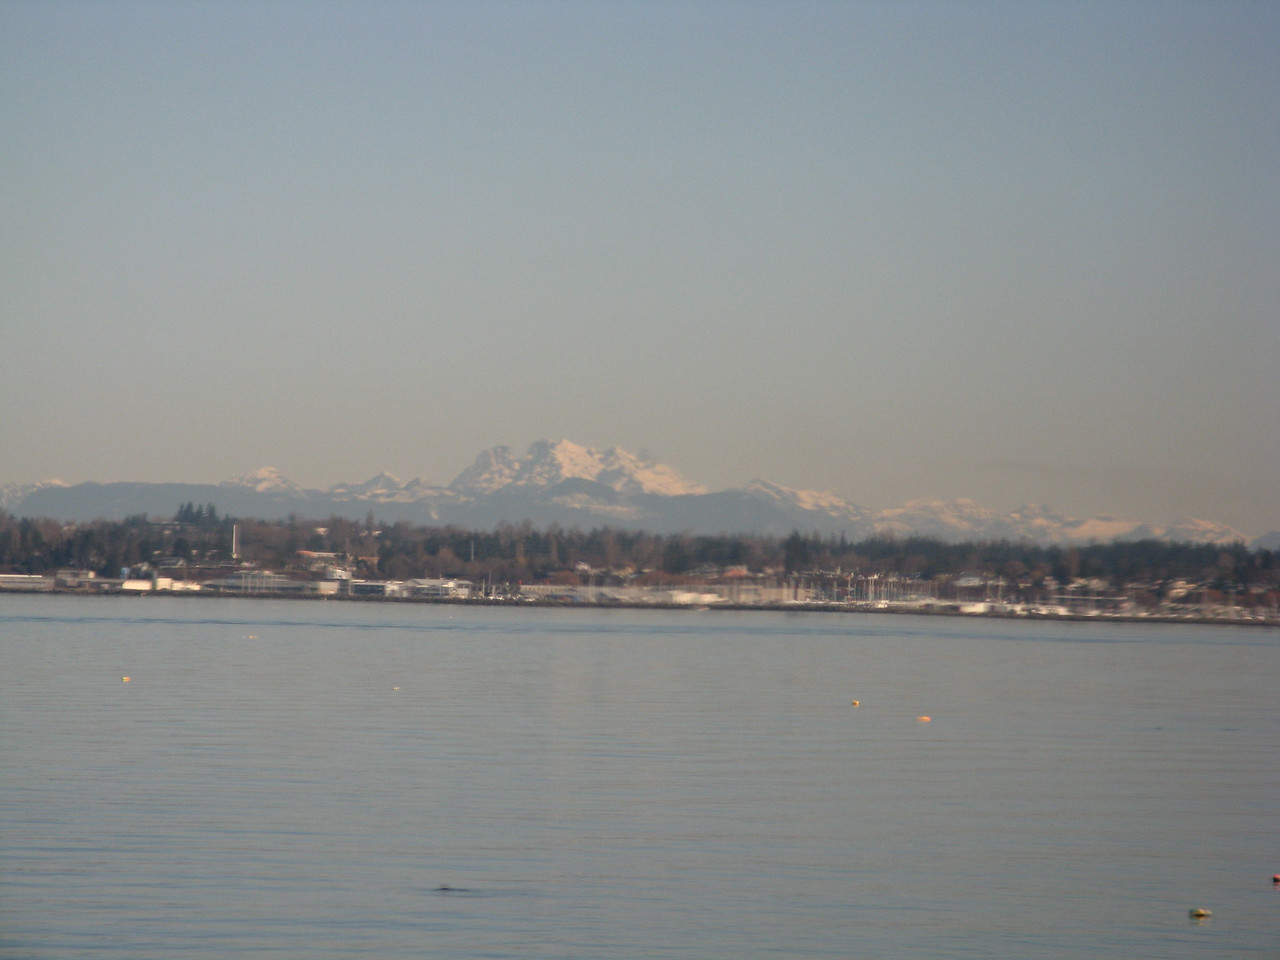 We can see Canadian snow capped mountains looking north across Bellingham Bay.